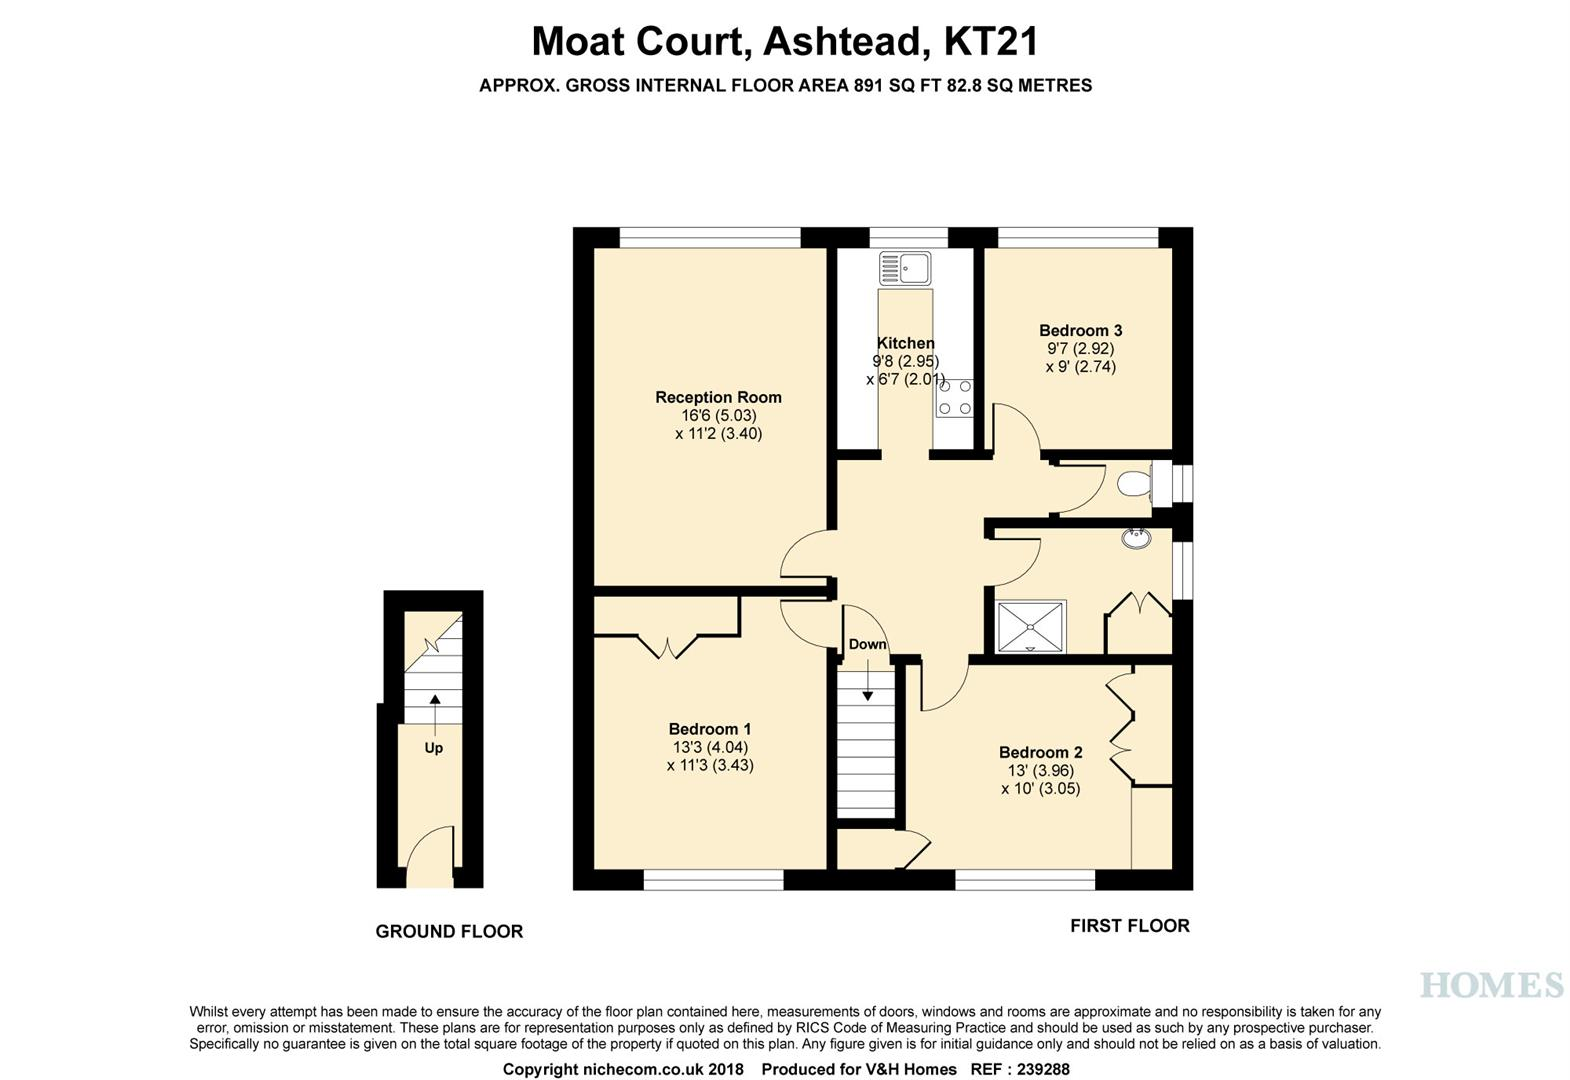 3 Bed Maisonette For Sale In Moat Court Ashtead Kt21 Zoopla